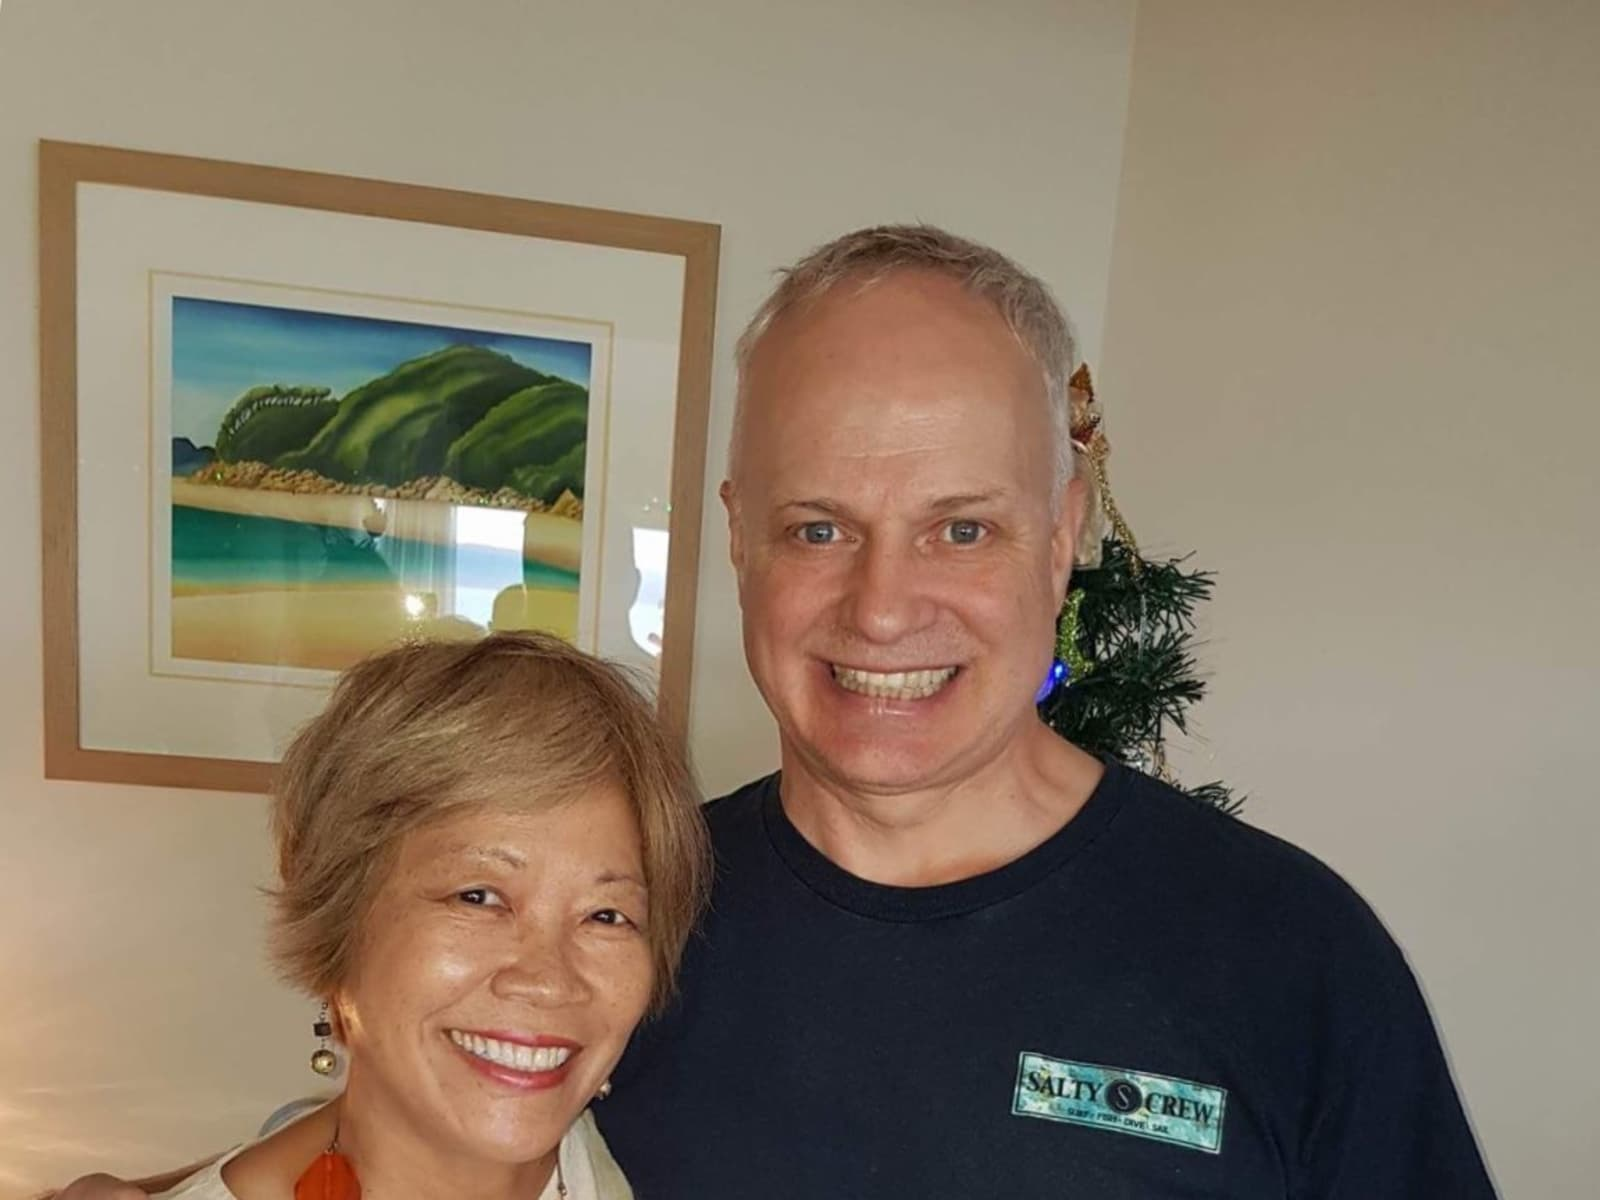 Janet & Ged from Sydney, New South Wales, Australia